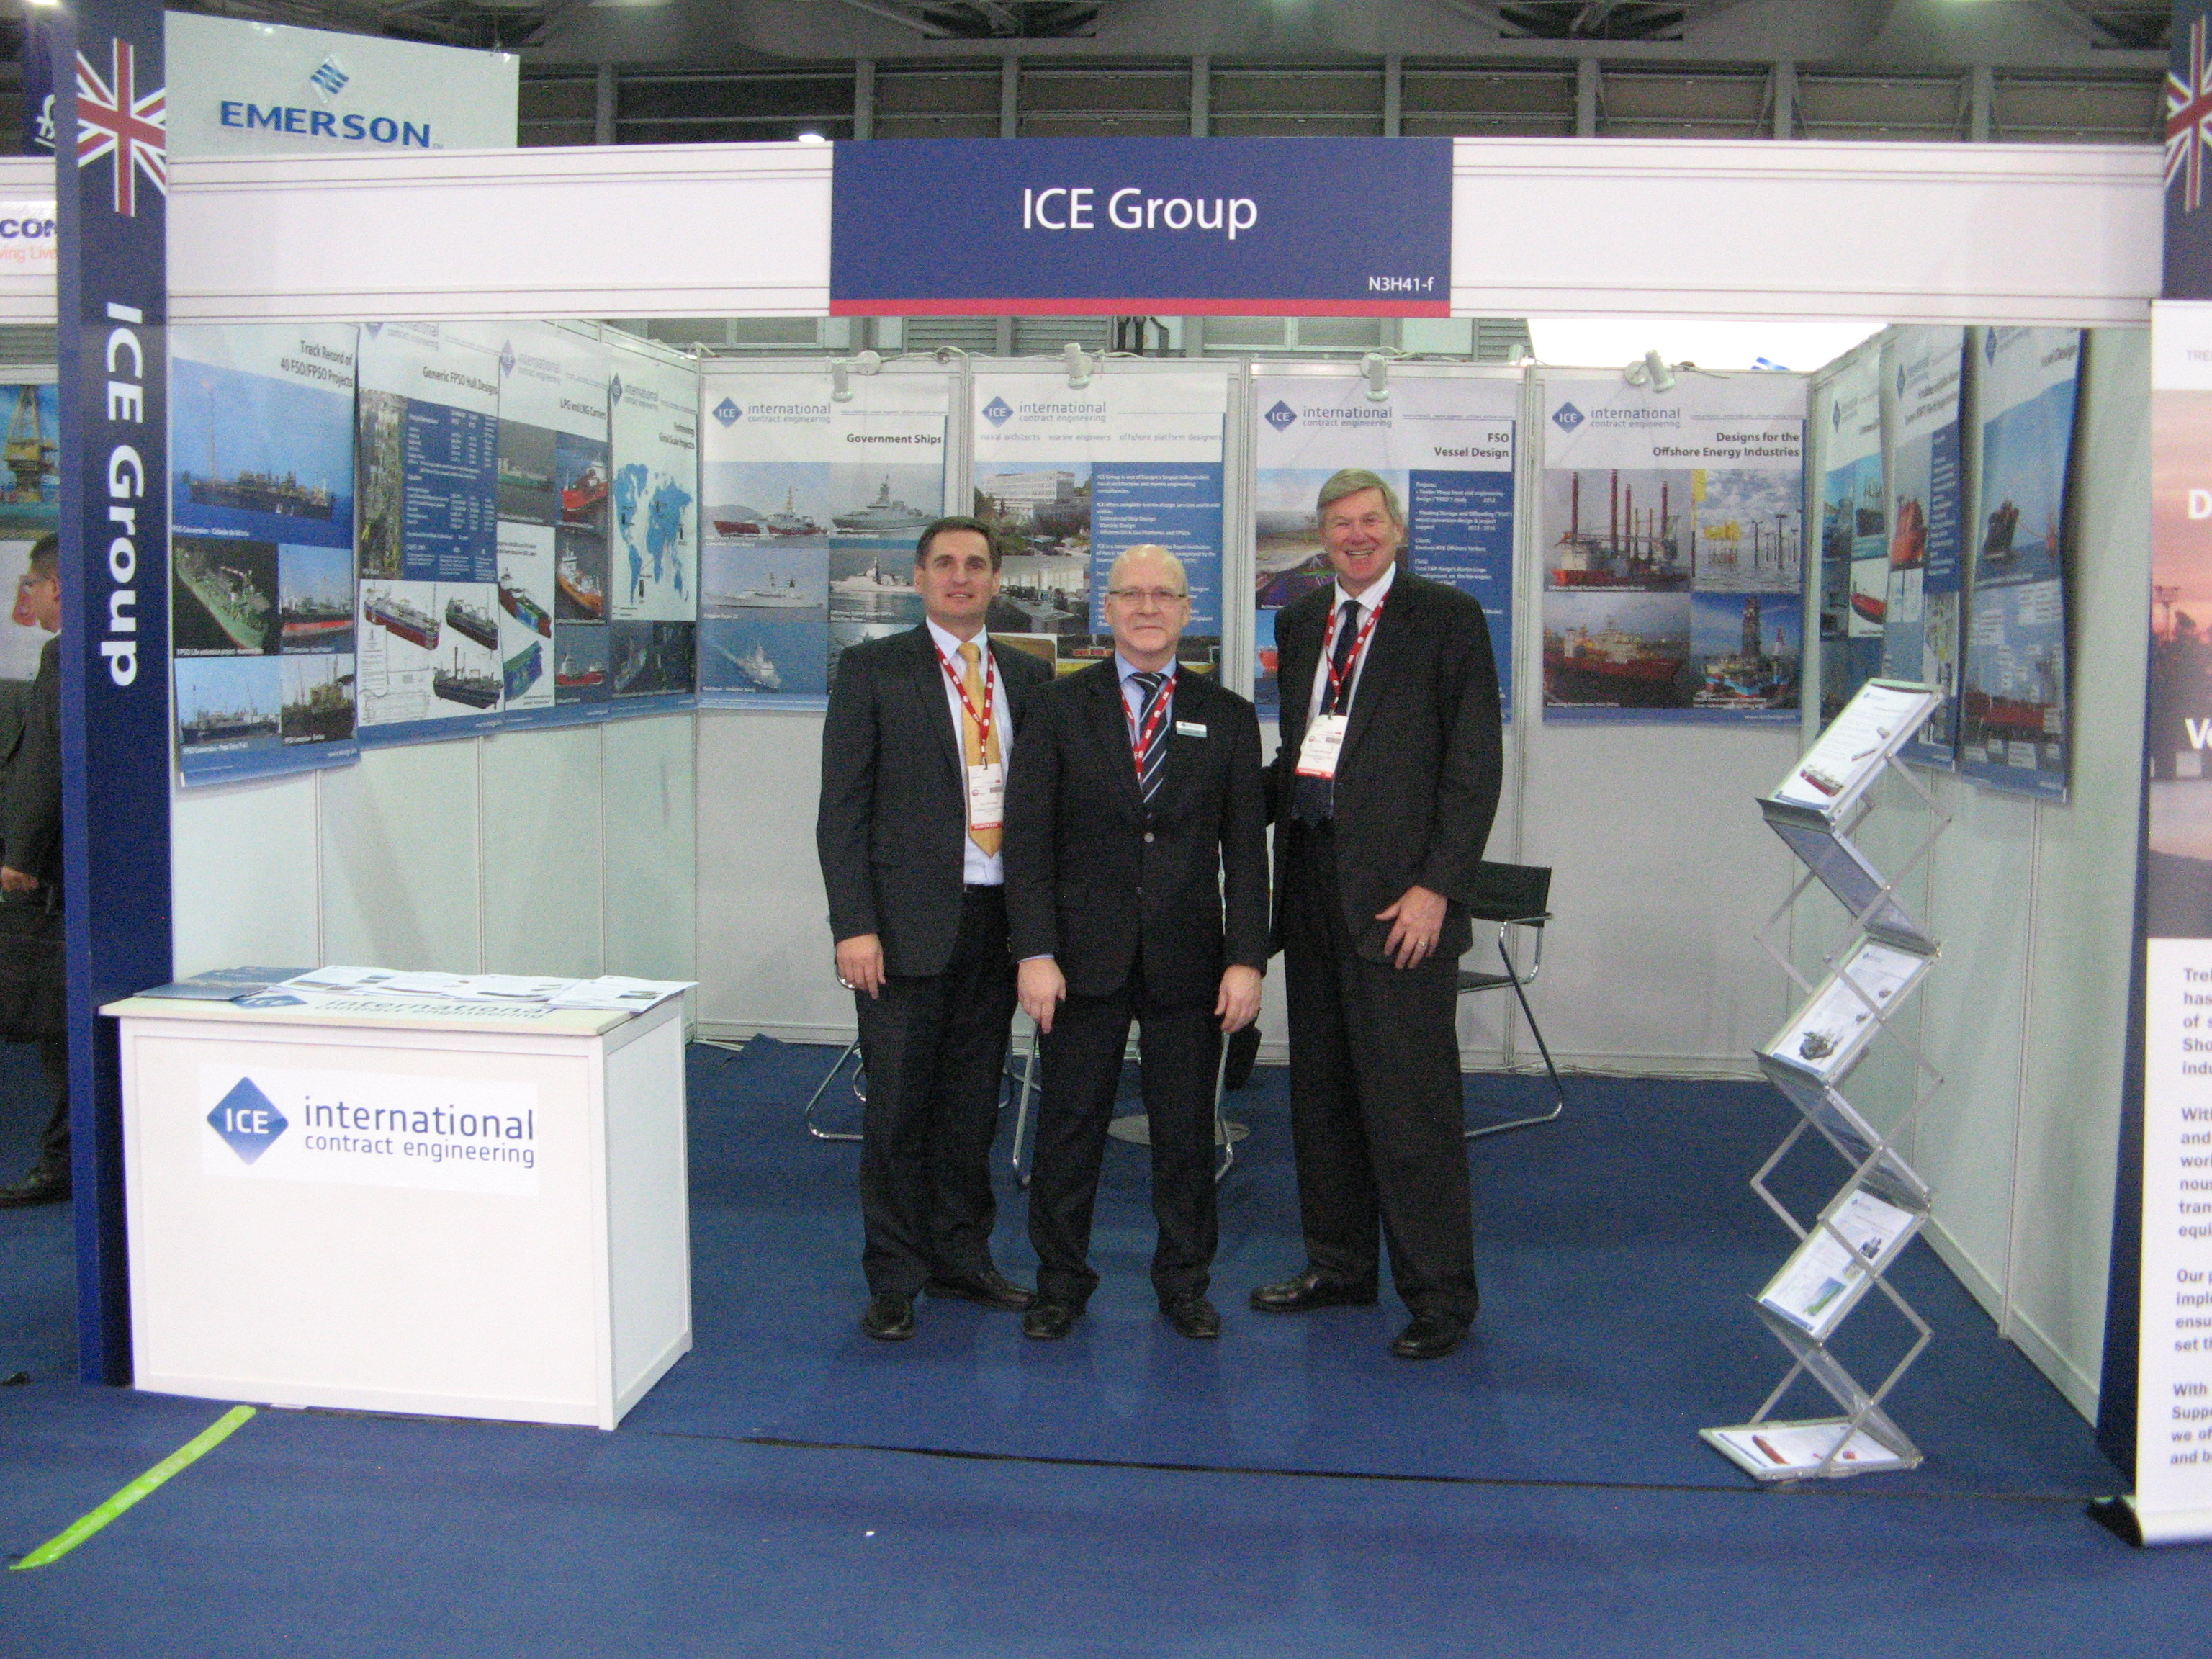 Picture from ICE's stand at the exhibition.